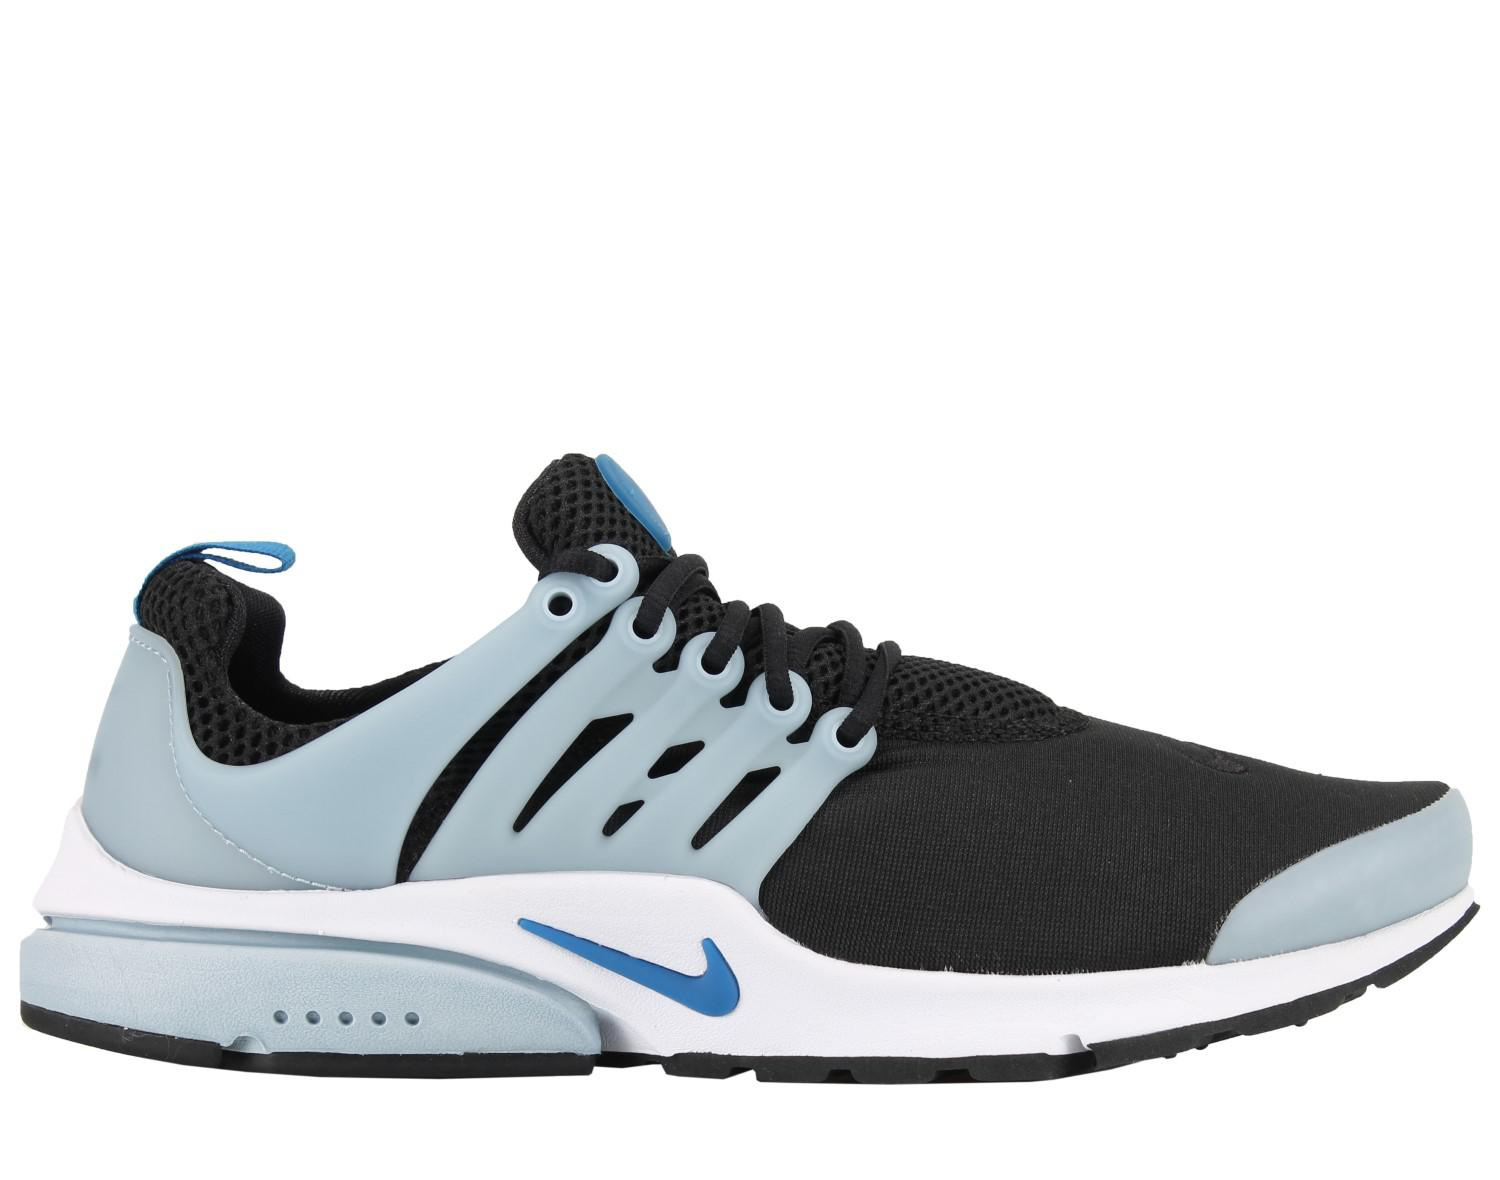 ... canada lyst nike air presto essential running shoes size 10 in blue for  men 0996f cbc05 fa41f4e3c